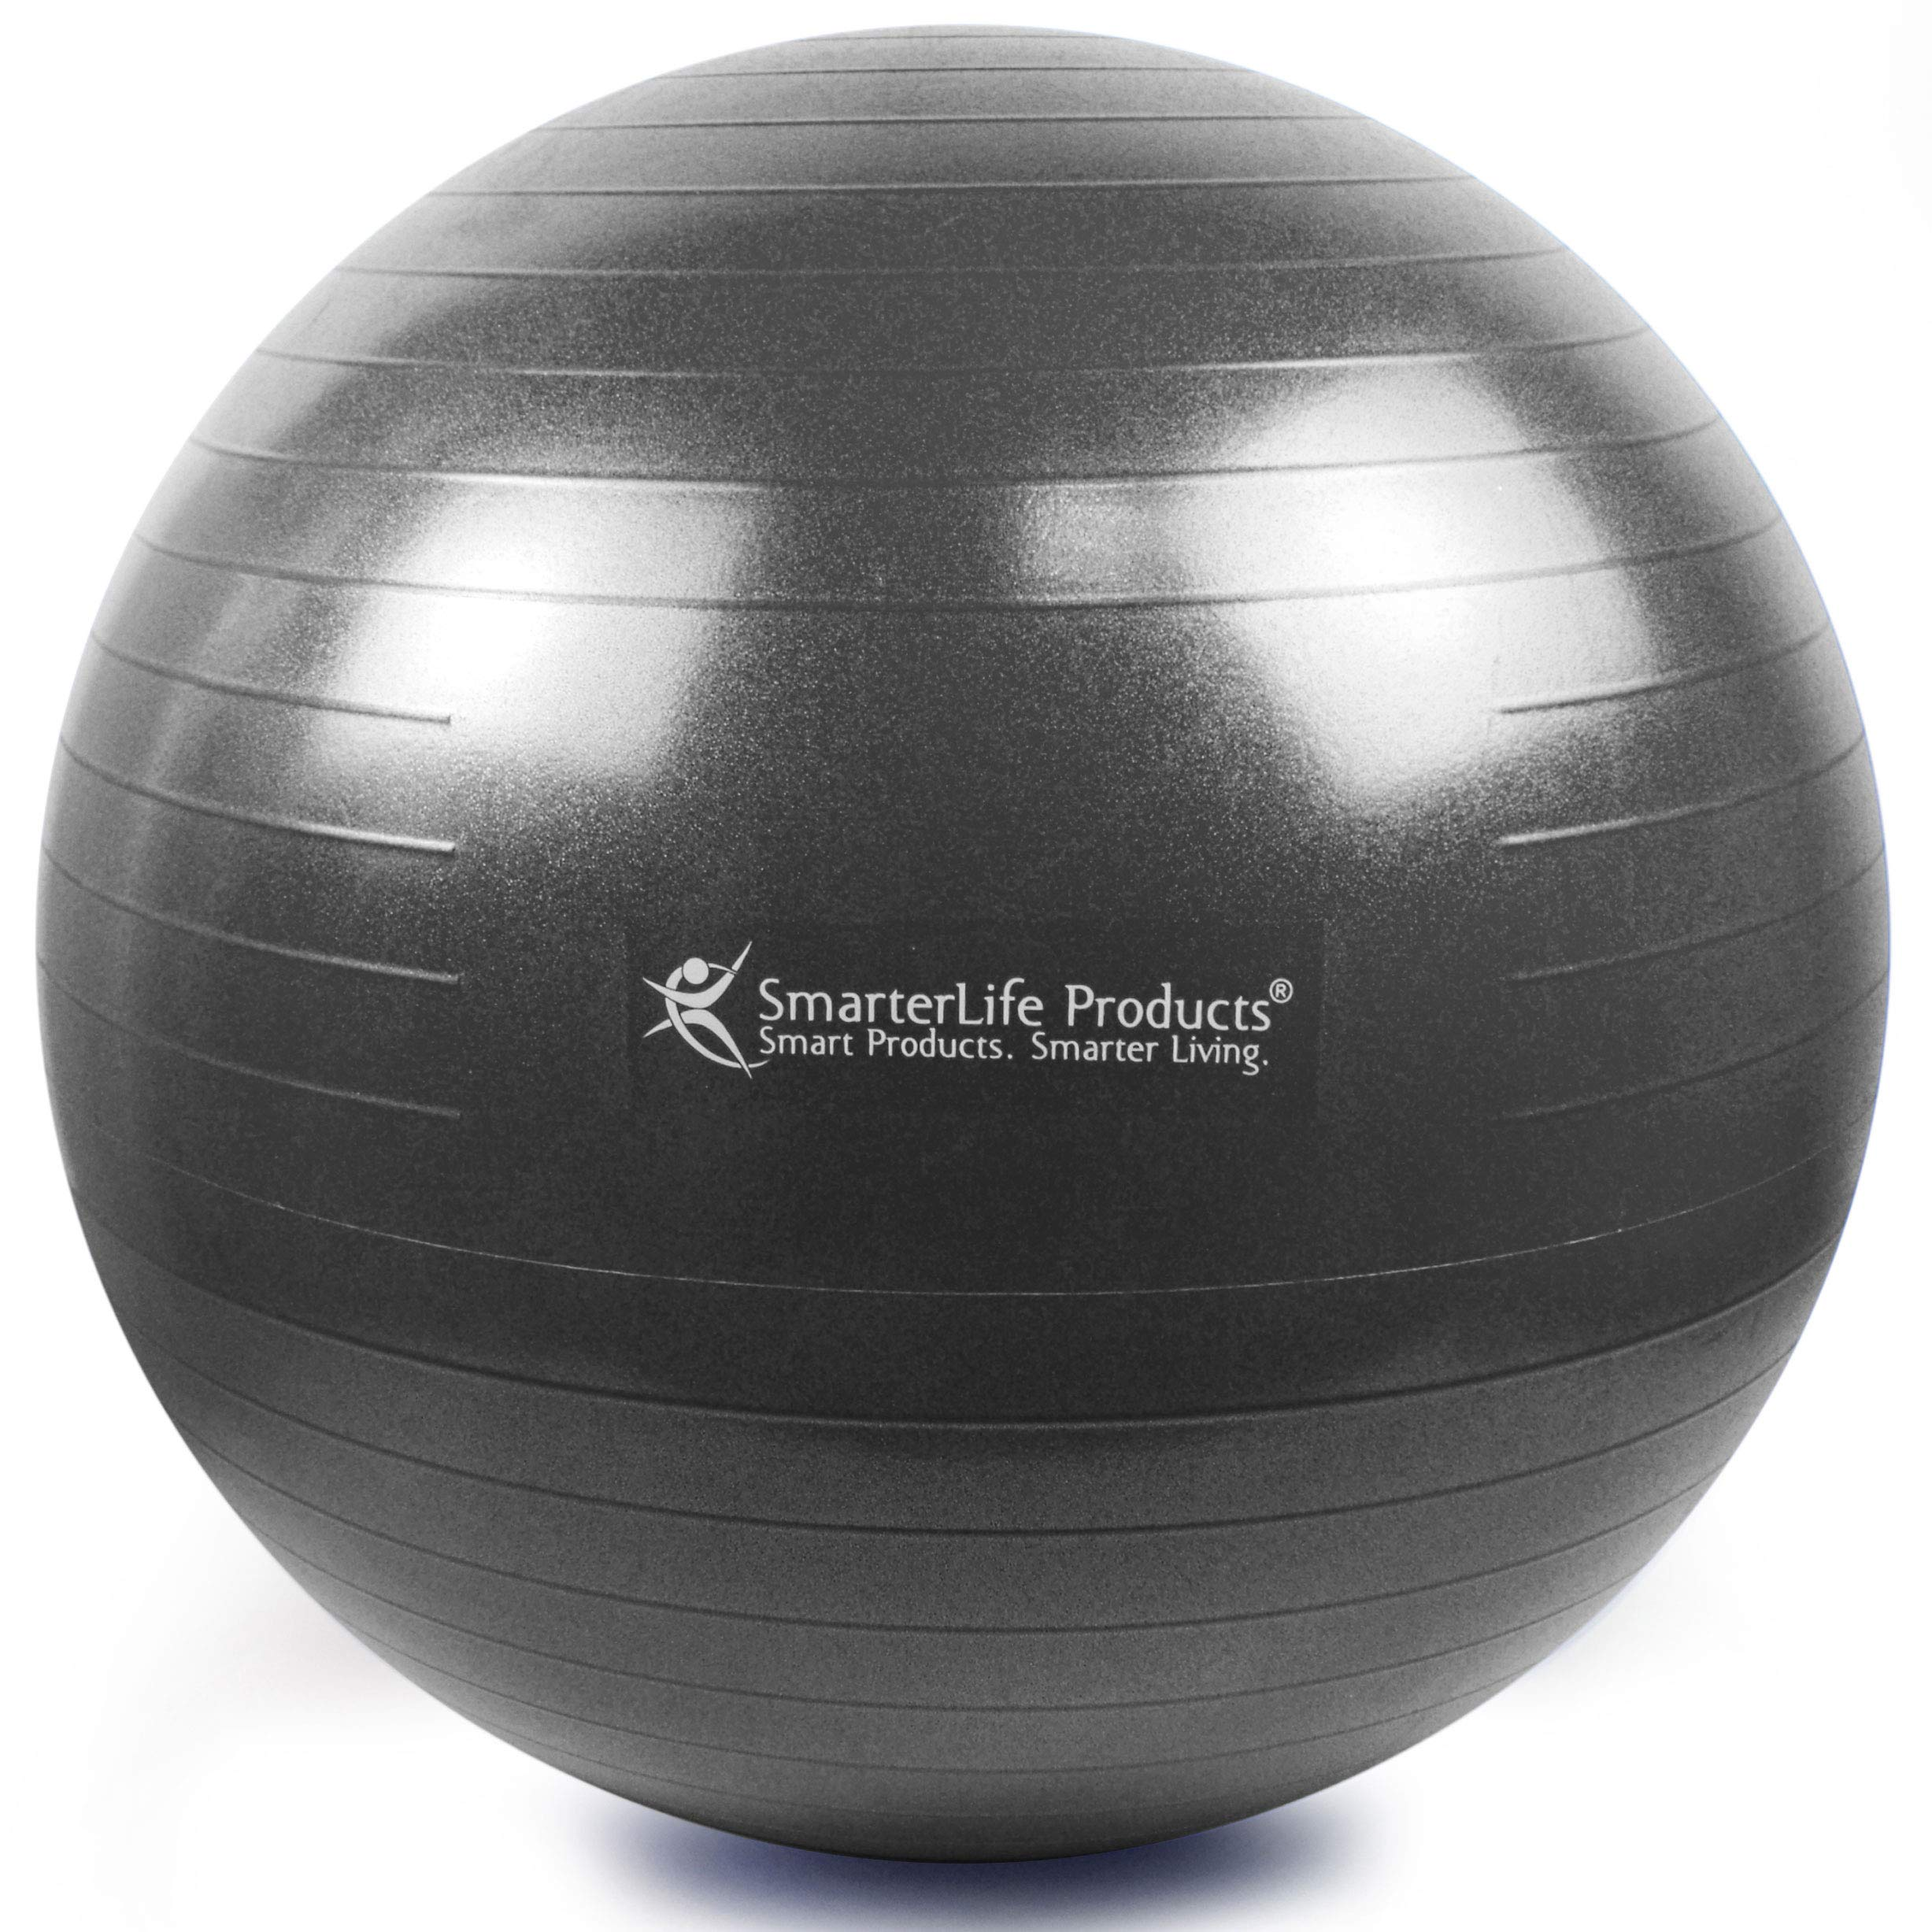 Exercise Ball for Yoga, Balance, Stability from SmarterLife - Fitness, Pilates, Birthing, Therapy, Office Ball Chair, Classroom Flexible Seating - Anti Burst, Non Slip + Workout Guide (Black, 65cm) by SmarterLife Products (Image #1)